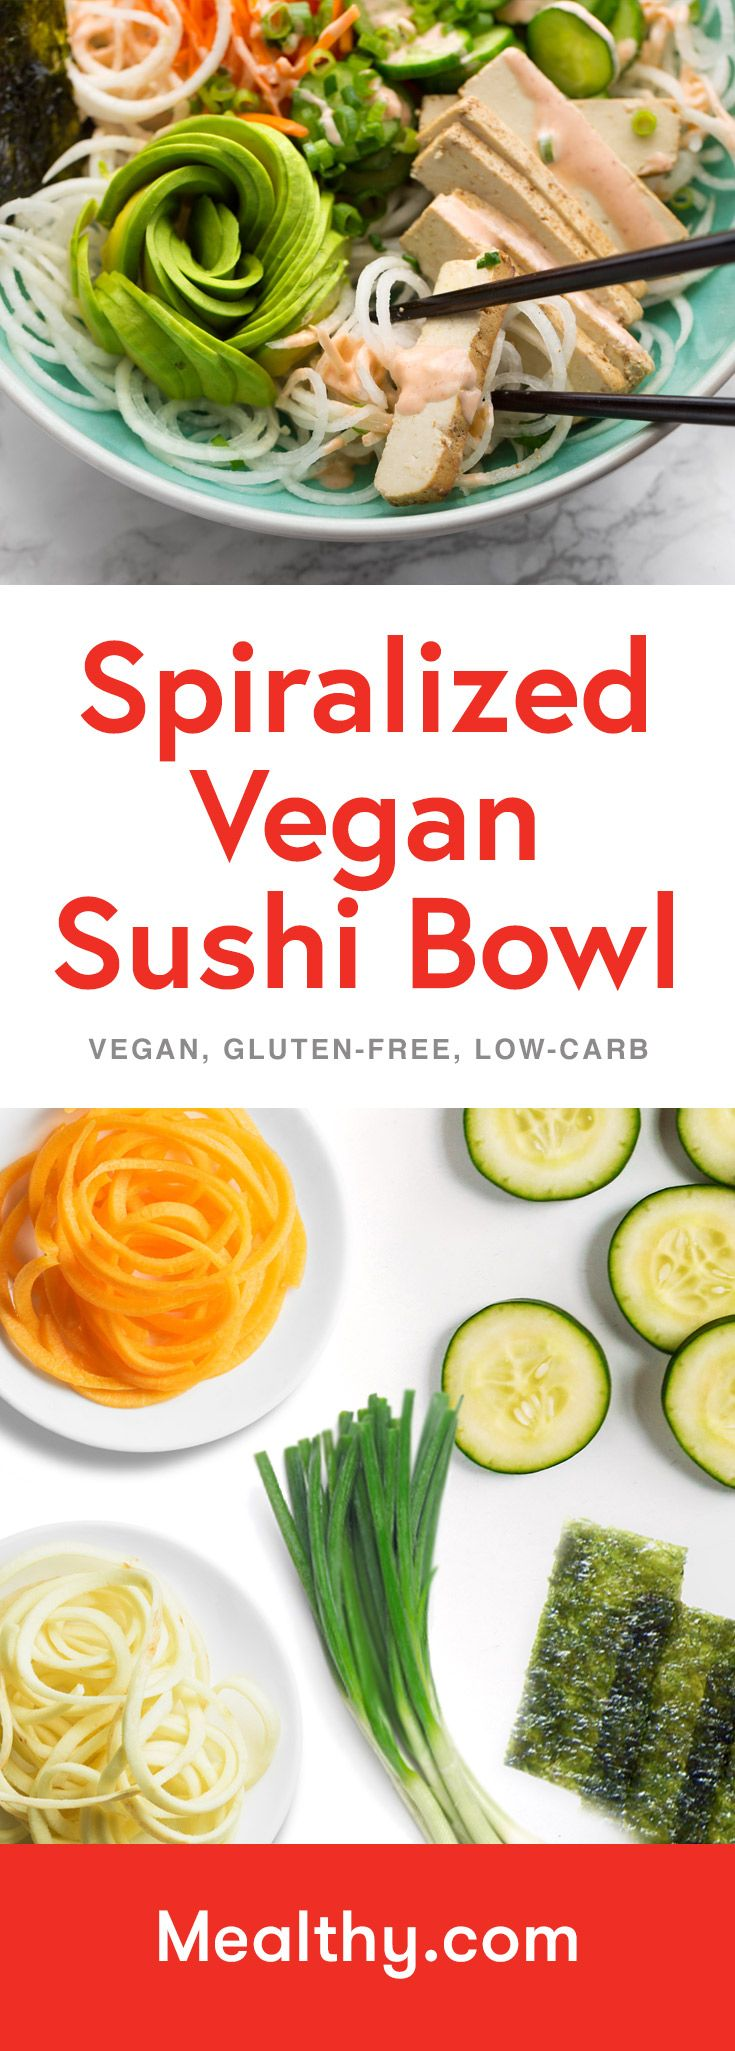 Spiralized Vegan Sushi Bowls